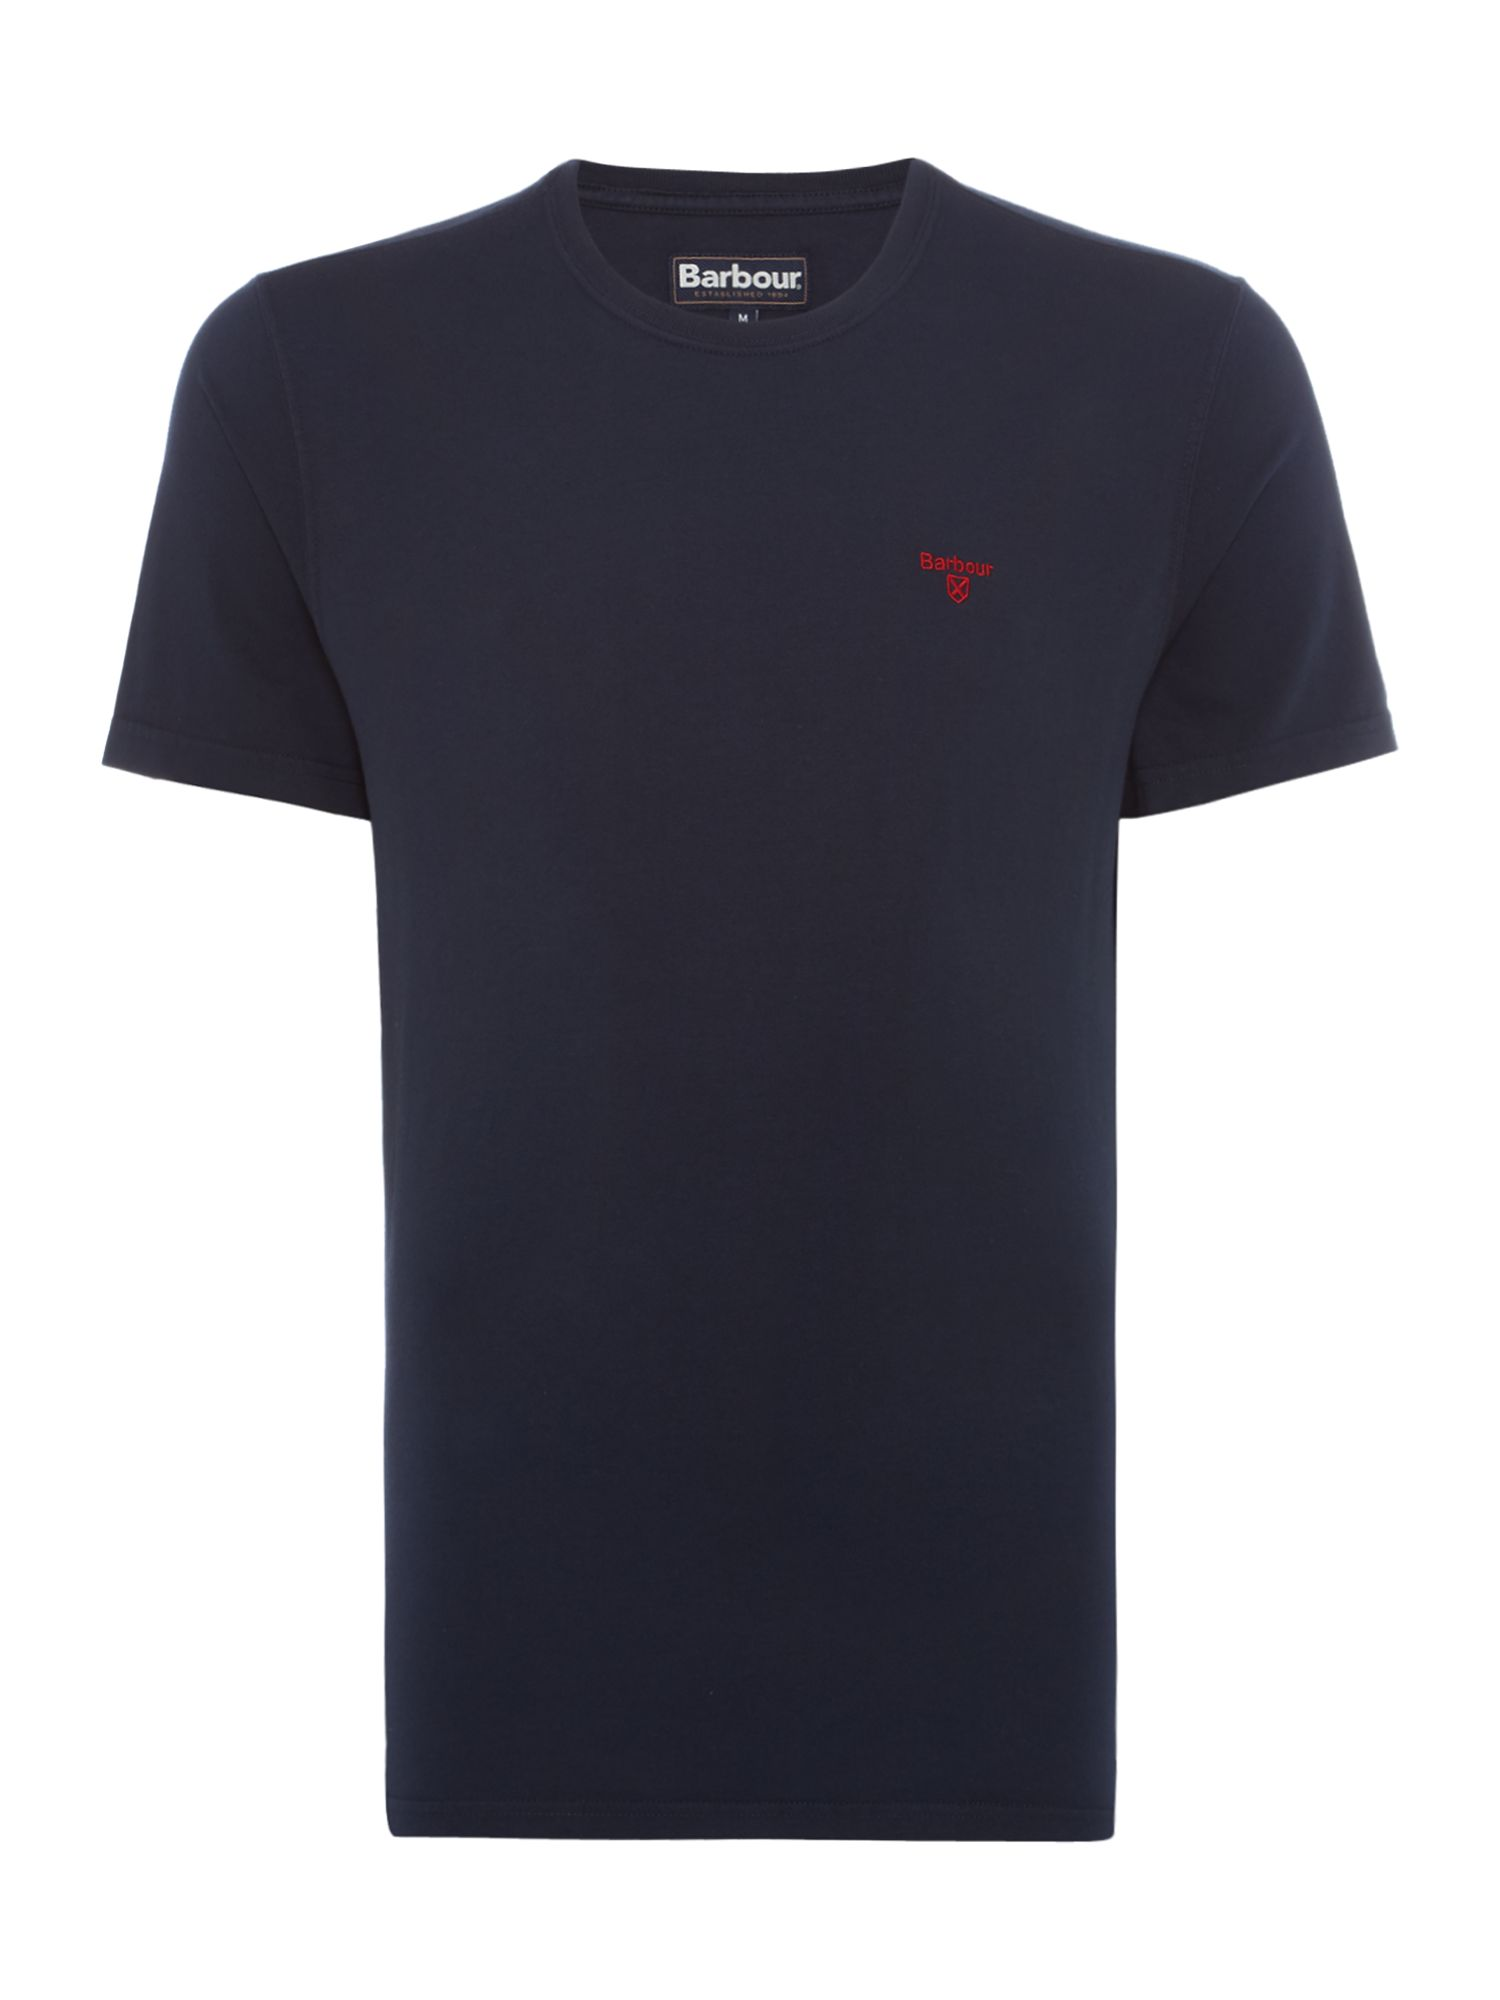 Men's Barbour Short sleeve sports tee, Blue